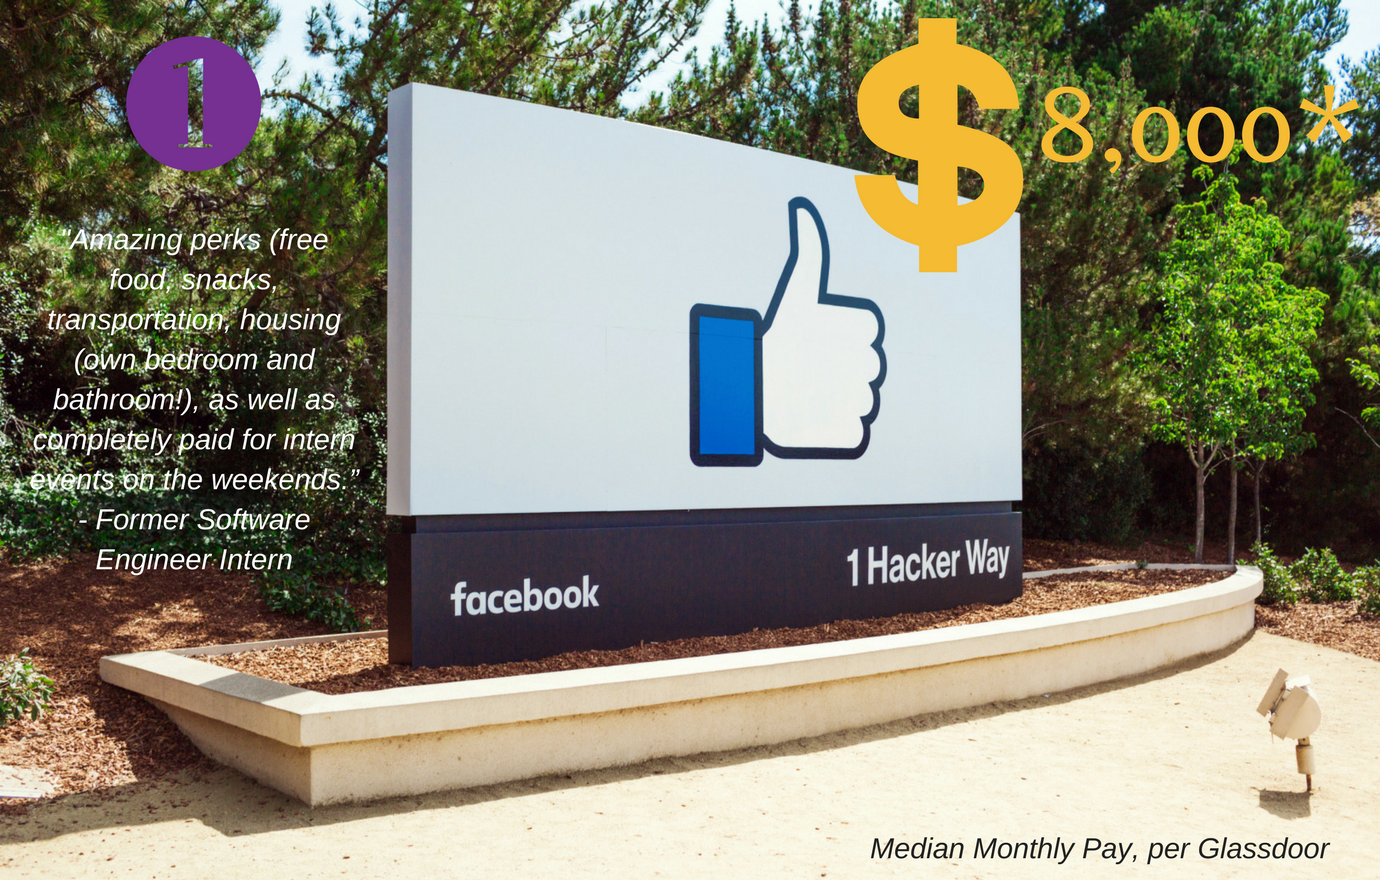 #1. Facebook. Median Monthly Pay: $8,000. Facebook's open culture, world-class mentors and opportunities for real impact are just a few reasons why their intern program was ranked #1 on Glassdoor two years in a row. (Image: Facebook)